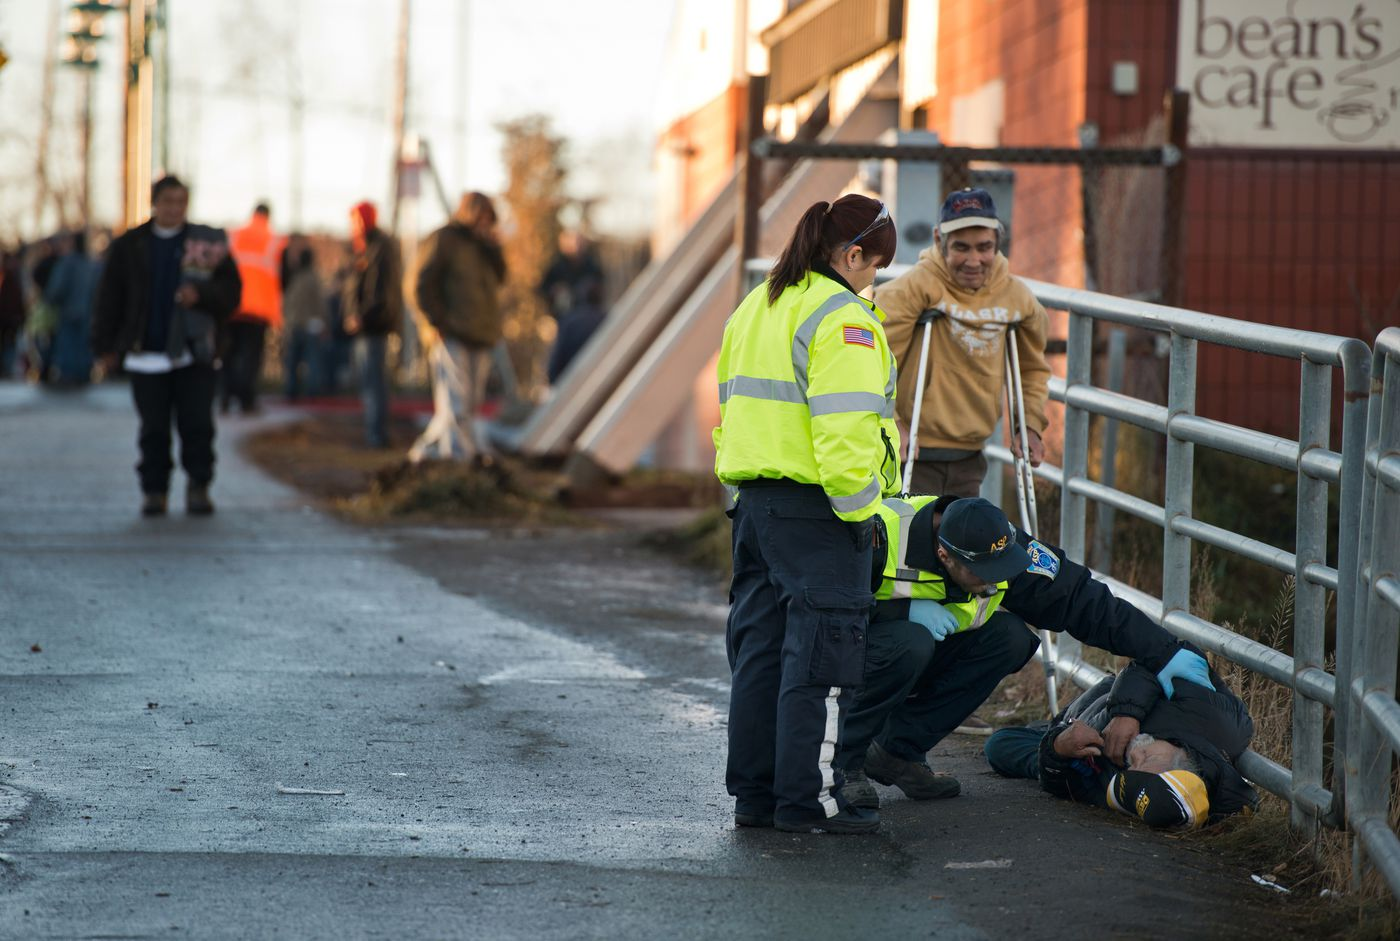 "Anchorage Safety Patrol driver Pam Garner, left, and EMT Garrett Sey, kneeling, respond to a man on the ground near Bean's Cafe. Garner said she does occasionally get burned out at her job. ""Because it's just an everyday thing and you see the same people over and over,"" she said. Photographed on Wednesday, November 19, 2014. Marc Lester / ADN"